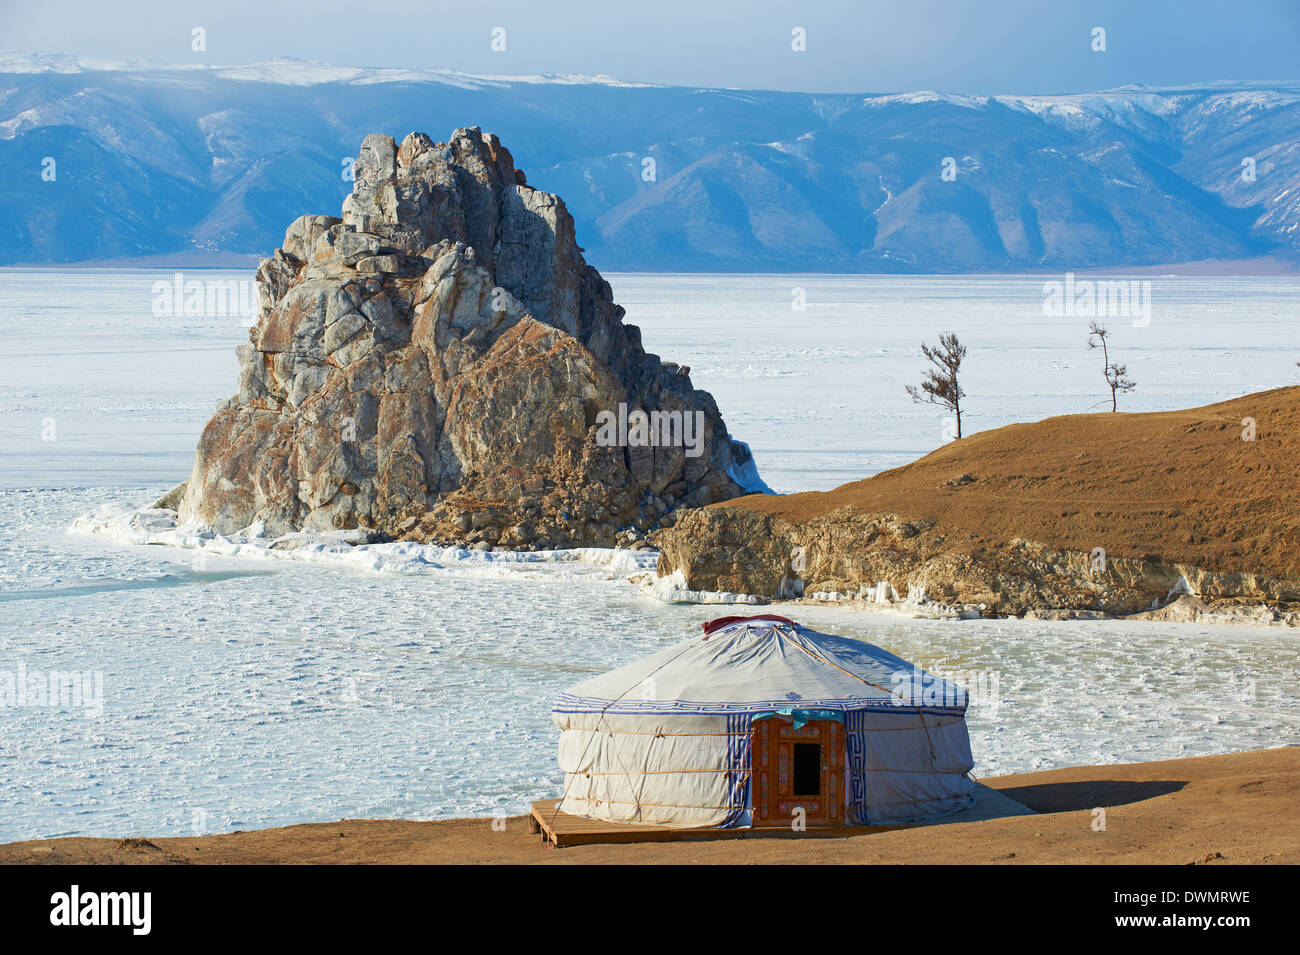 Shaman rock, Maloe More (Little Sea), Olkhon island, Lake Baikal, UNESCO Site, Irkutsk Oblast, Siberia, Russia - Stock Image